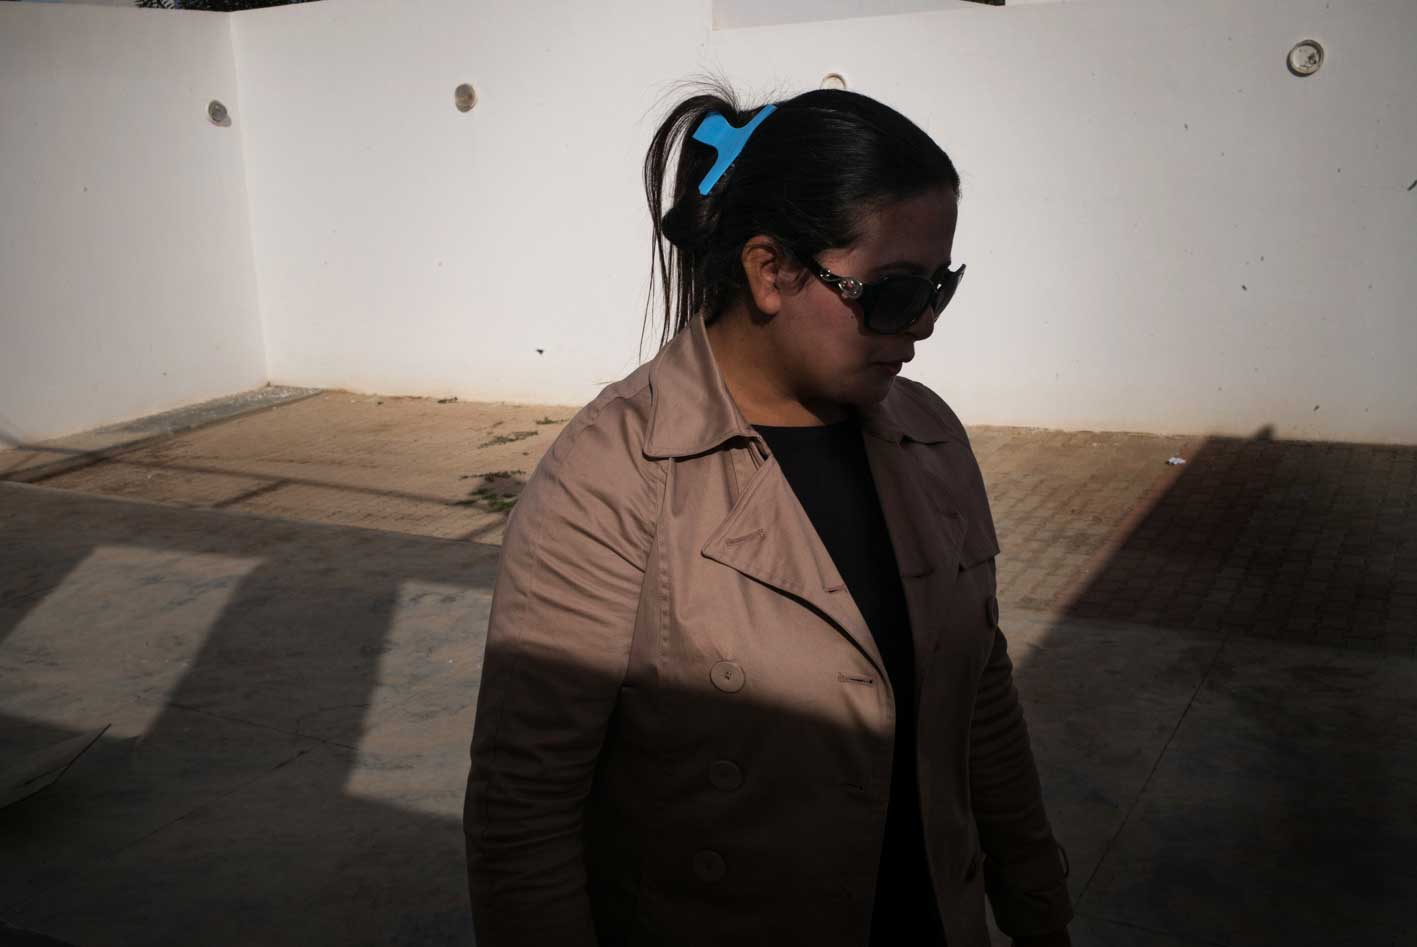 Hayet Amami, 33, works with young people in her impoverished hometown of Sidi Bouzid to discourage them from joining jihadists in Syria. She says her brother Jabeur, an unemployed engineering graduate, became increasingly isolated and aggressive before he left the country to join ISIS in July 2014. When he returned to Tunisia in September, authorities arrested him on charges of belonging to a terrorist cell. He is still awaiting trial in Tunisia's Mornaguia Prison, the country's largest facility.